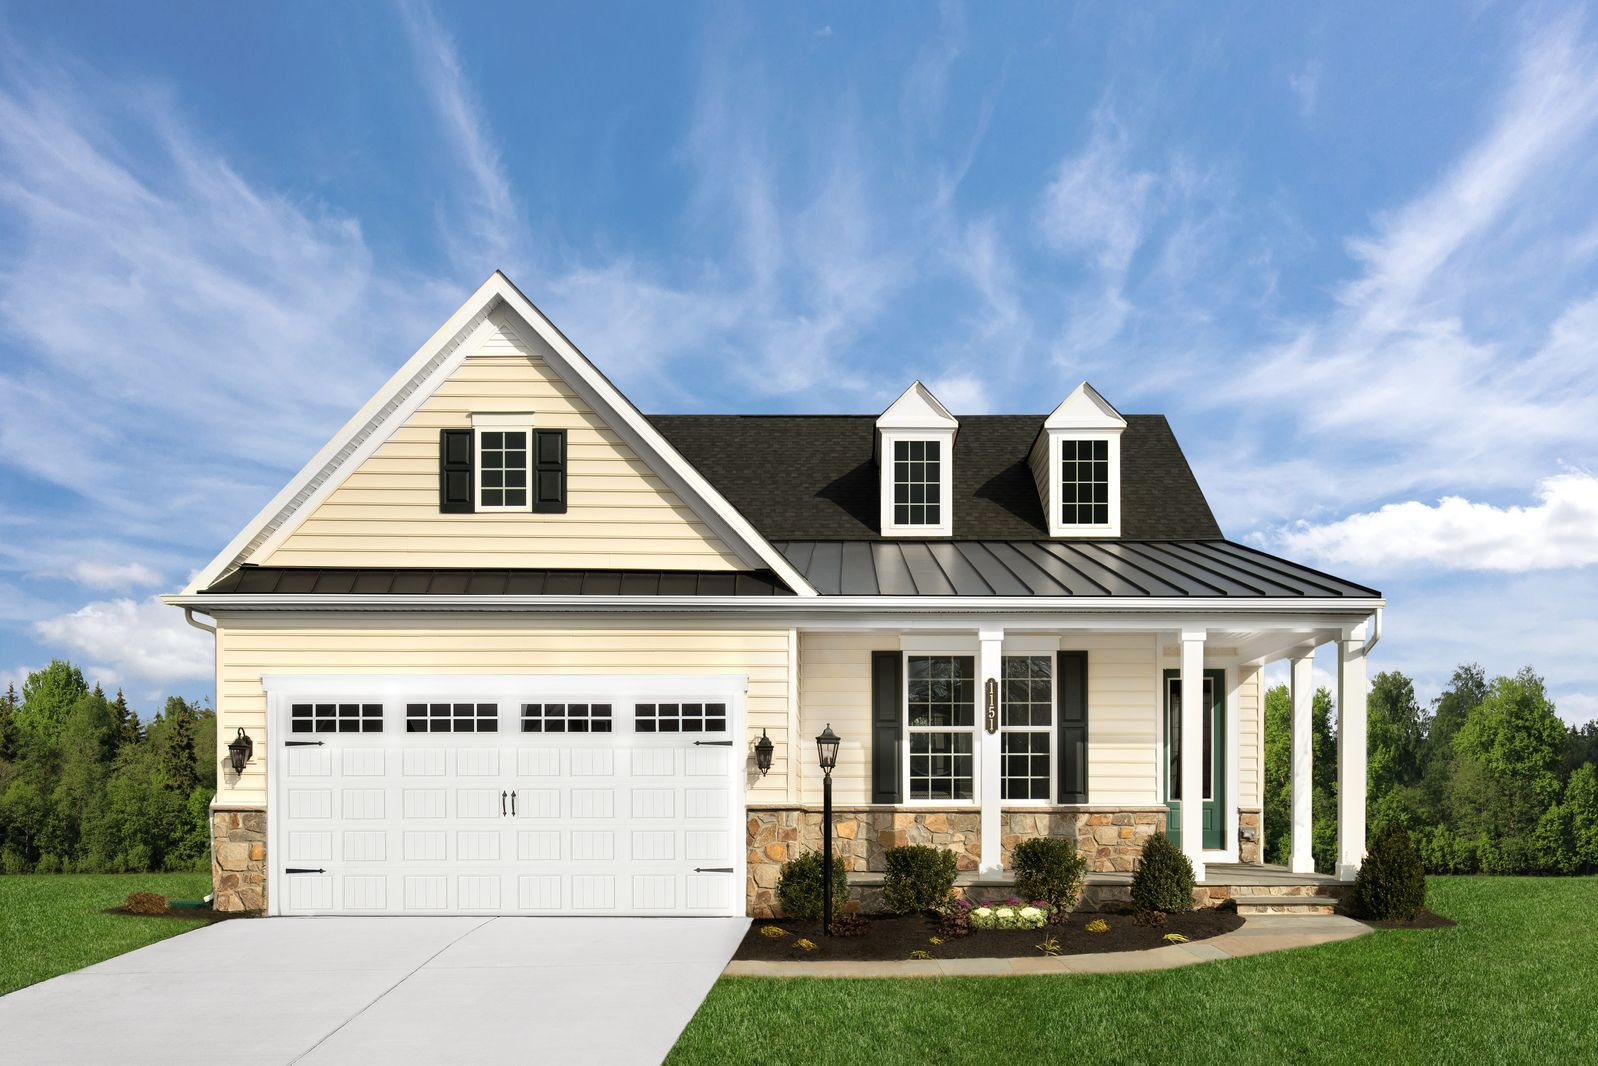 AN EASIER LIFE AT THE WOODLANDS AT GREYSTONE:The only luxury, gated 55+ single homes, minutes from downtown West Chester, with spectacular amenities, nearly 7 miles of walking trails and a lock & leave lifestyle.Schedule your private tour today